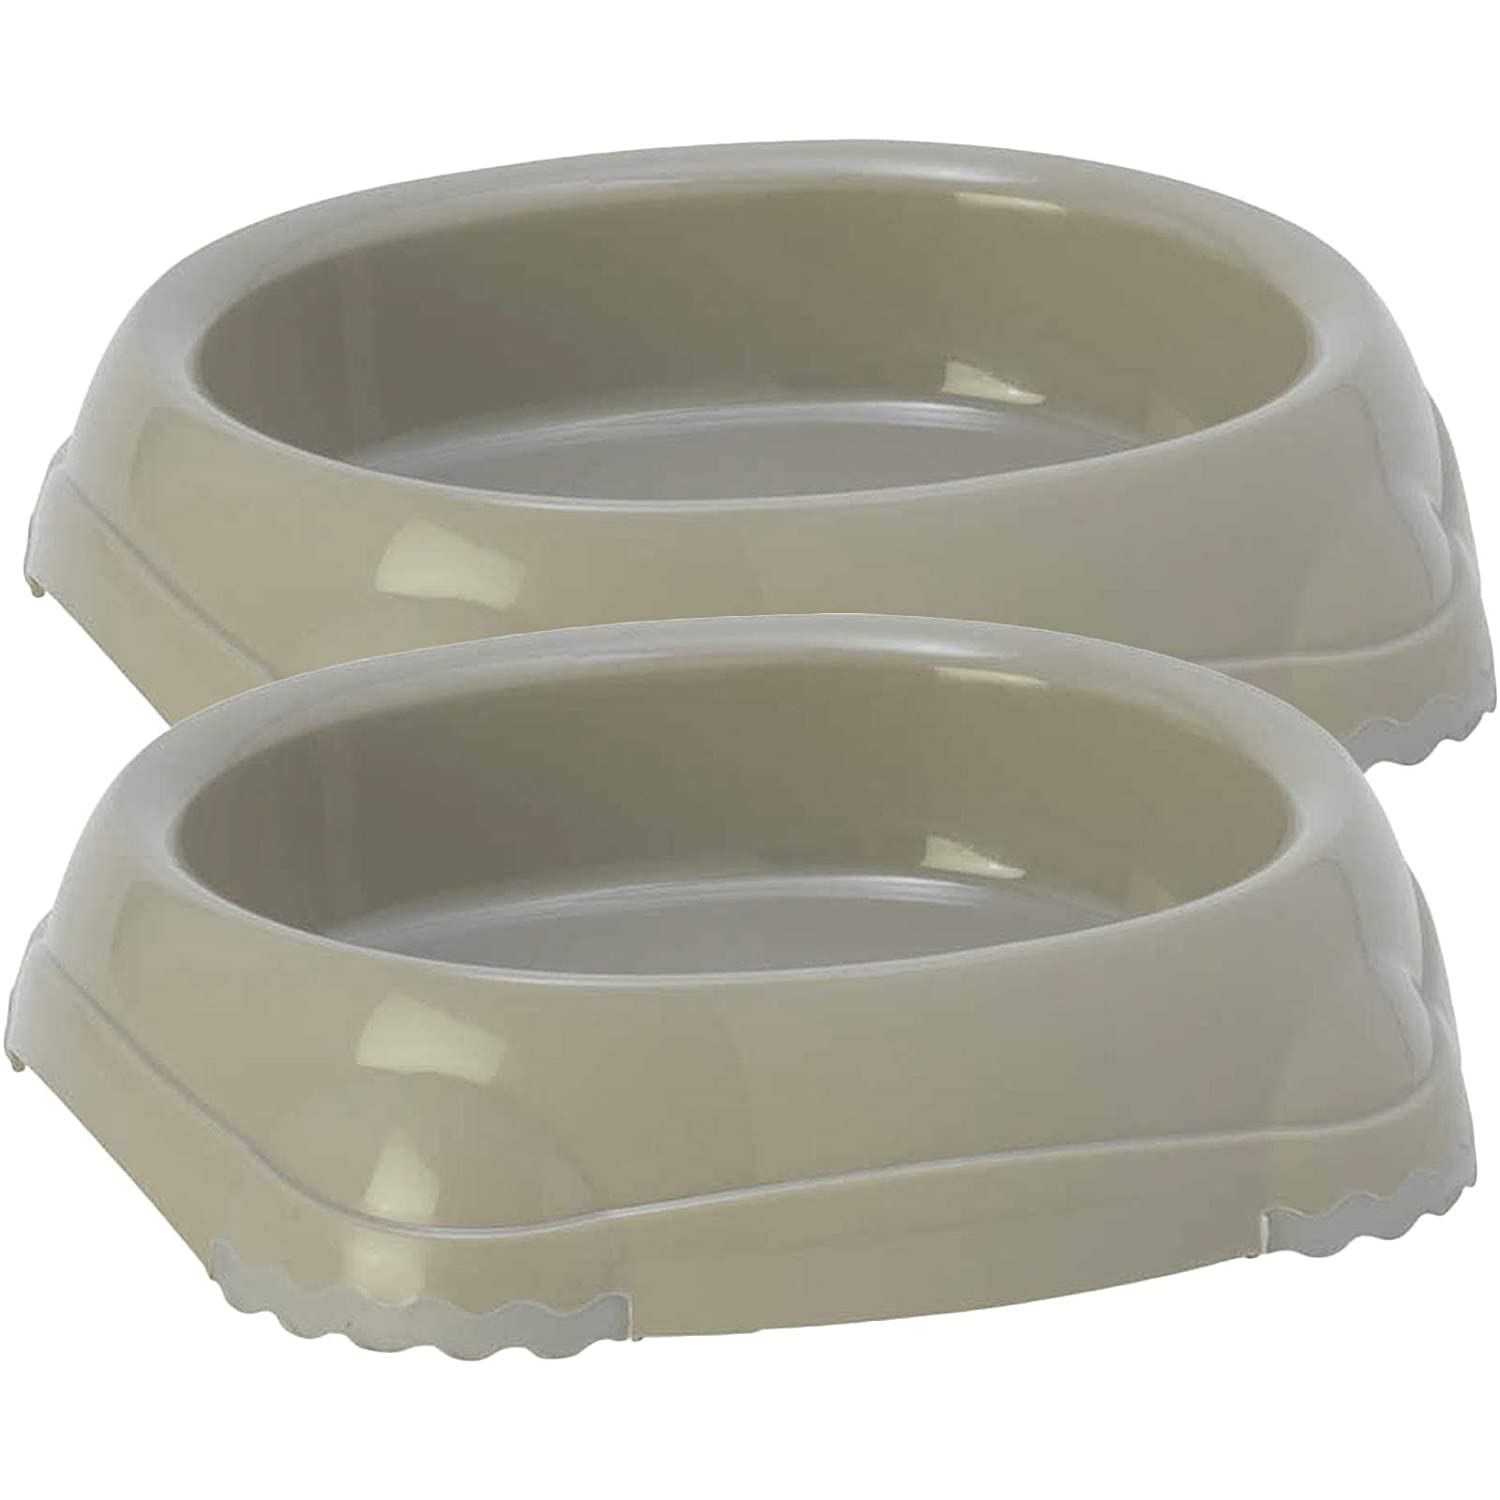 2 Non Slip Grey Cat Bowls - 0.2l 6 Colours Available Bowl Feeder Water Dish Fidding Kitten Dog Pet Bolting Darts